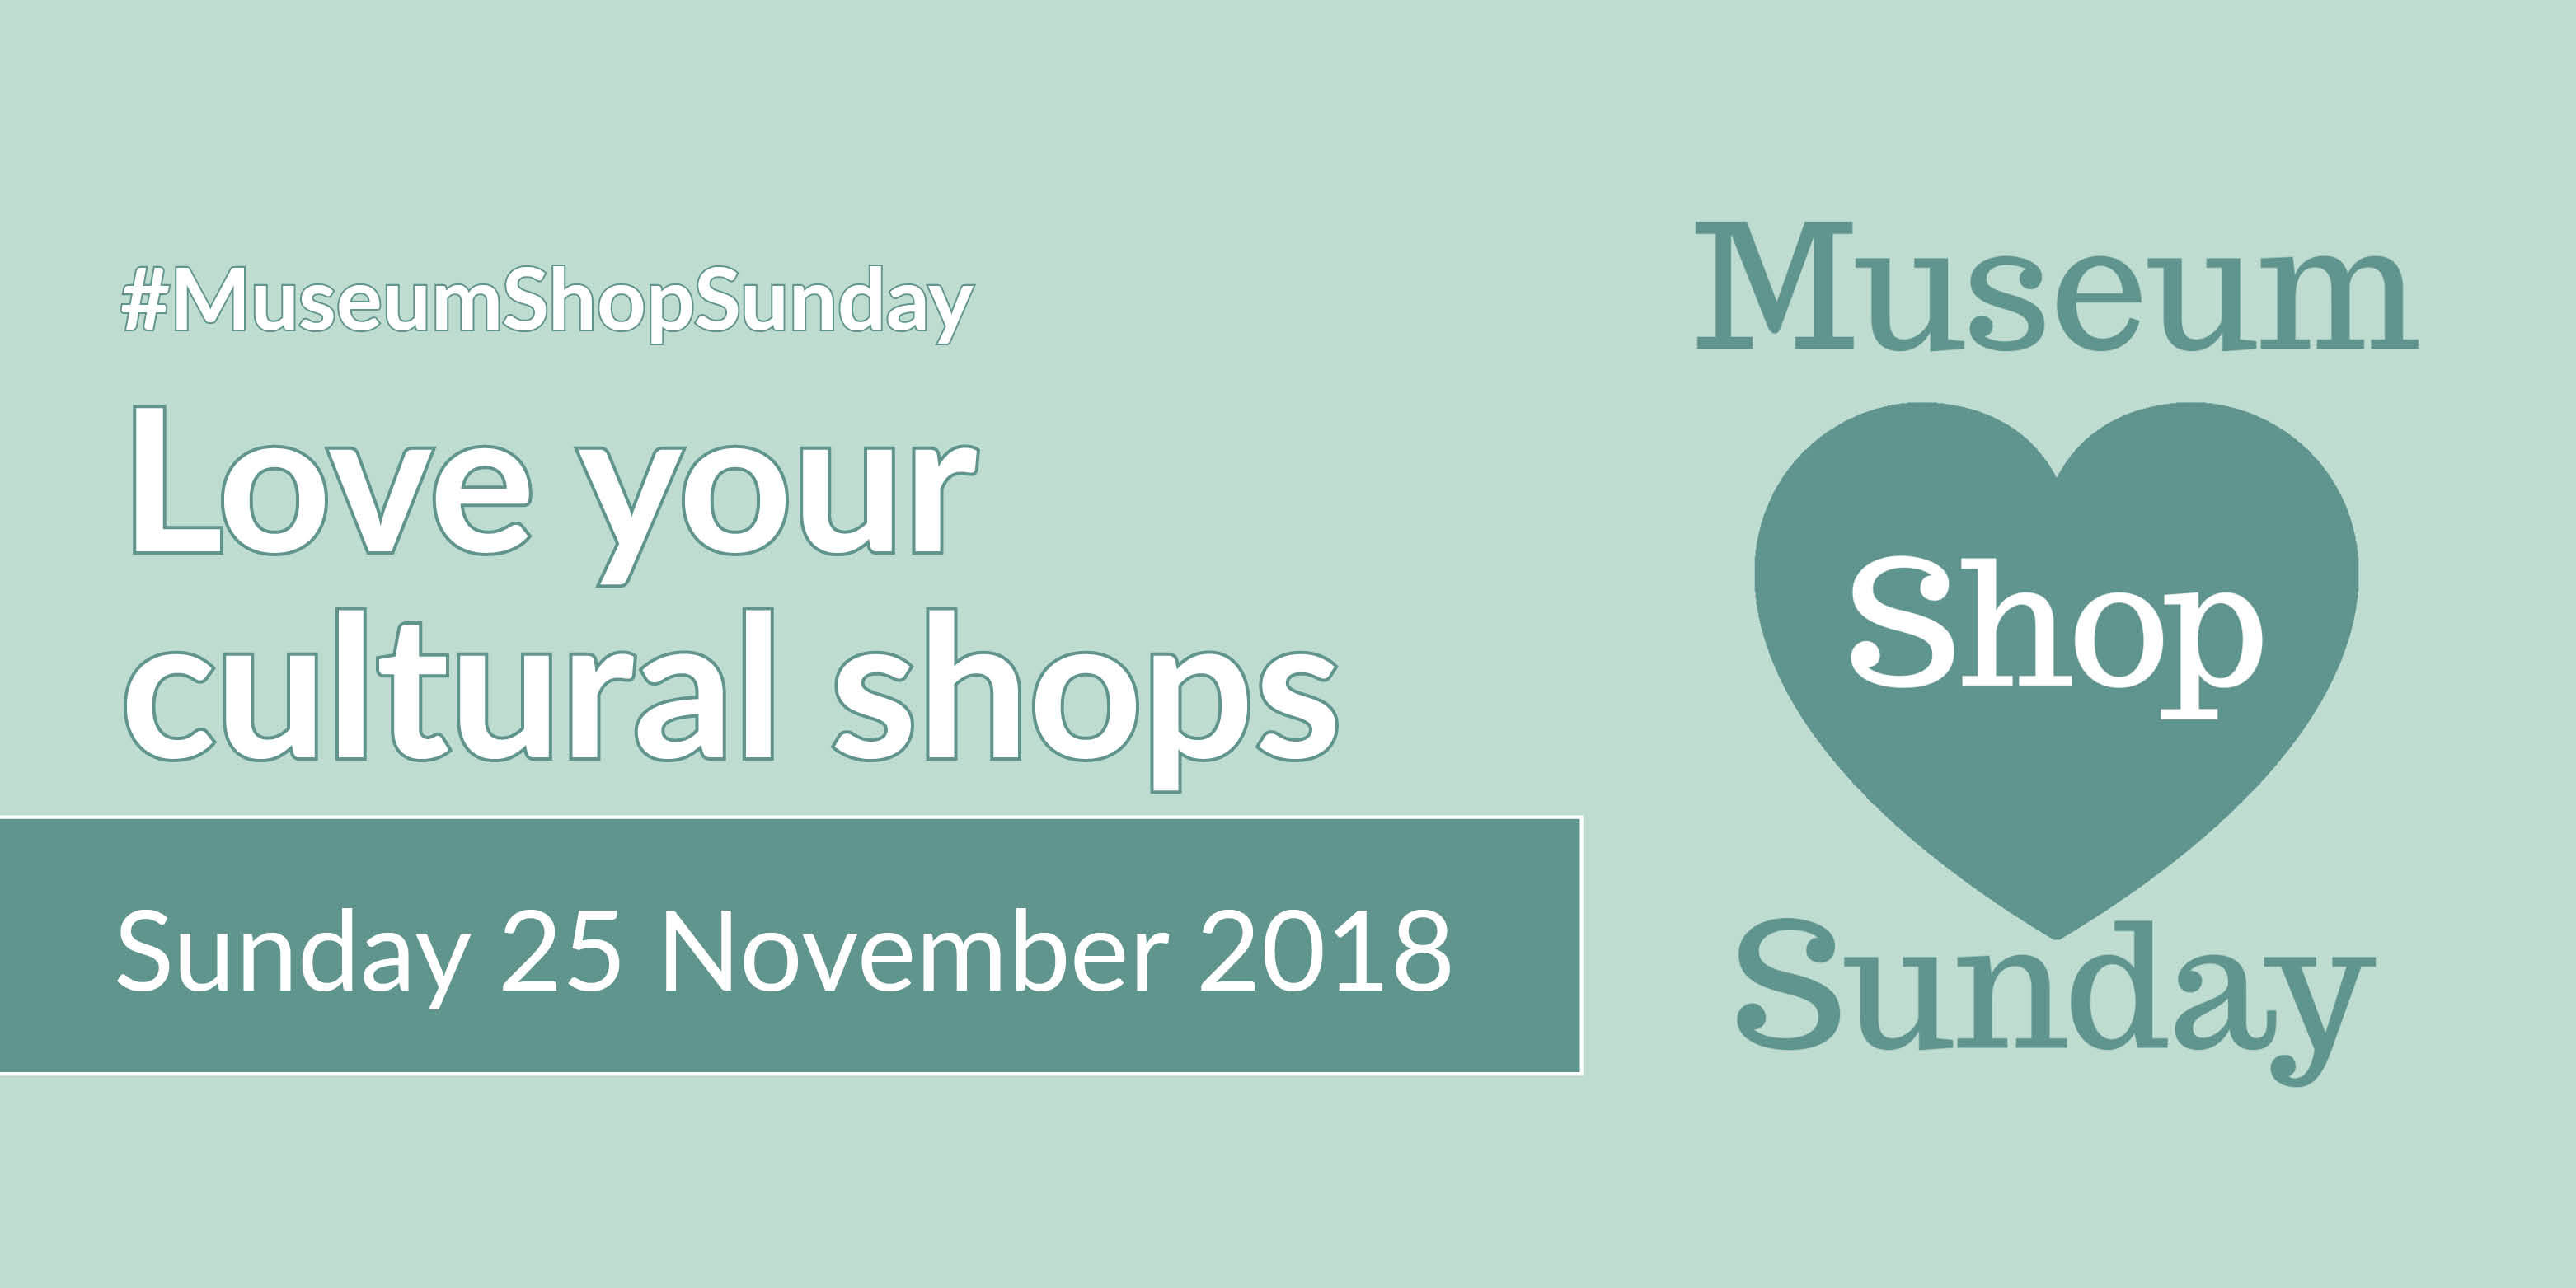 Museum Shop Sunday image that can be used by any venue taking part to help promote their event